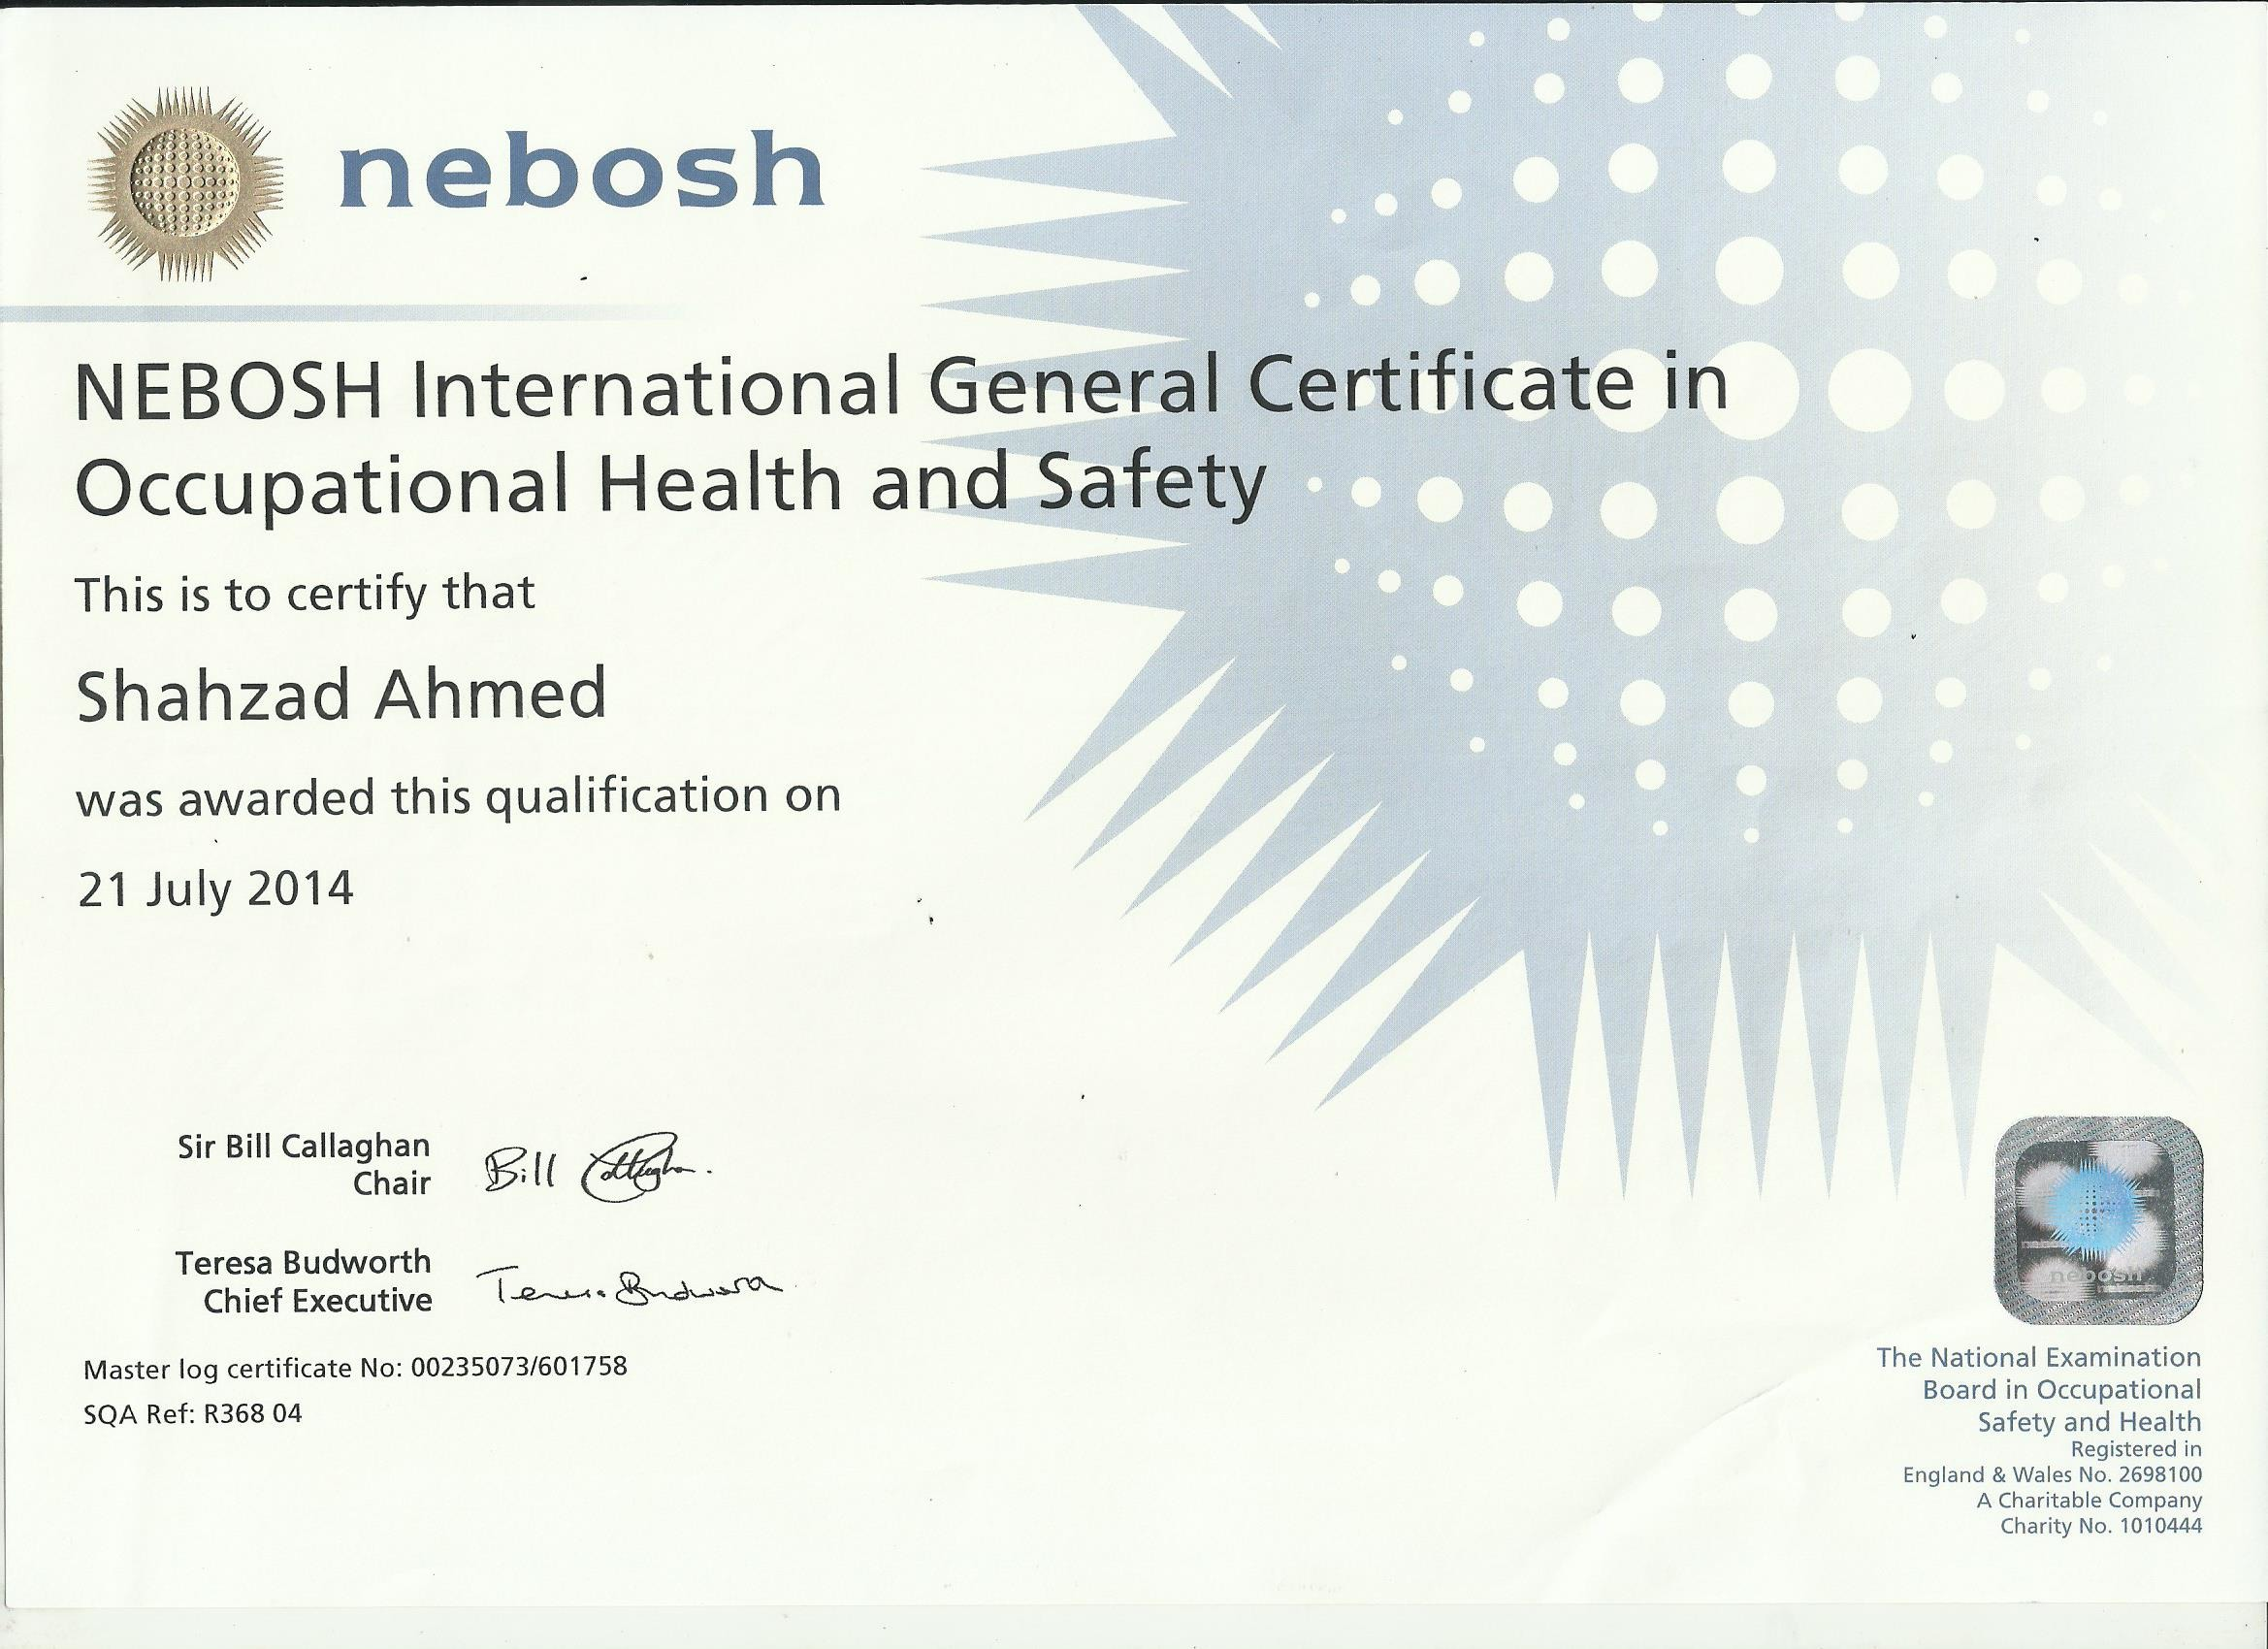 2014 national examination board of occupational health and safety